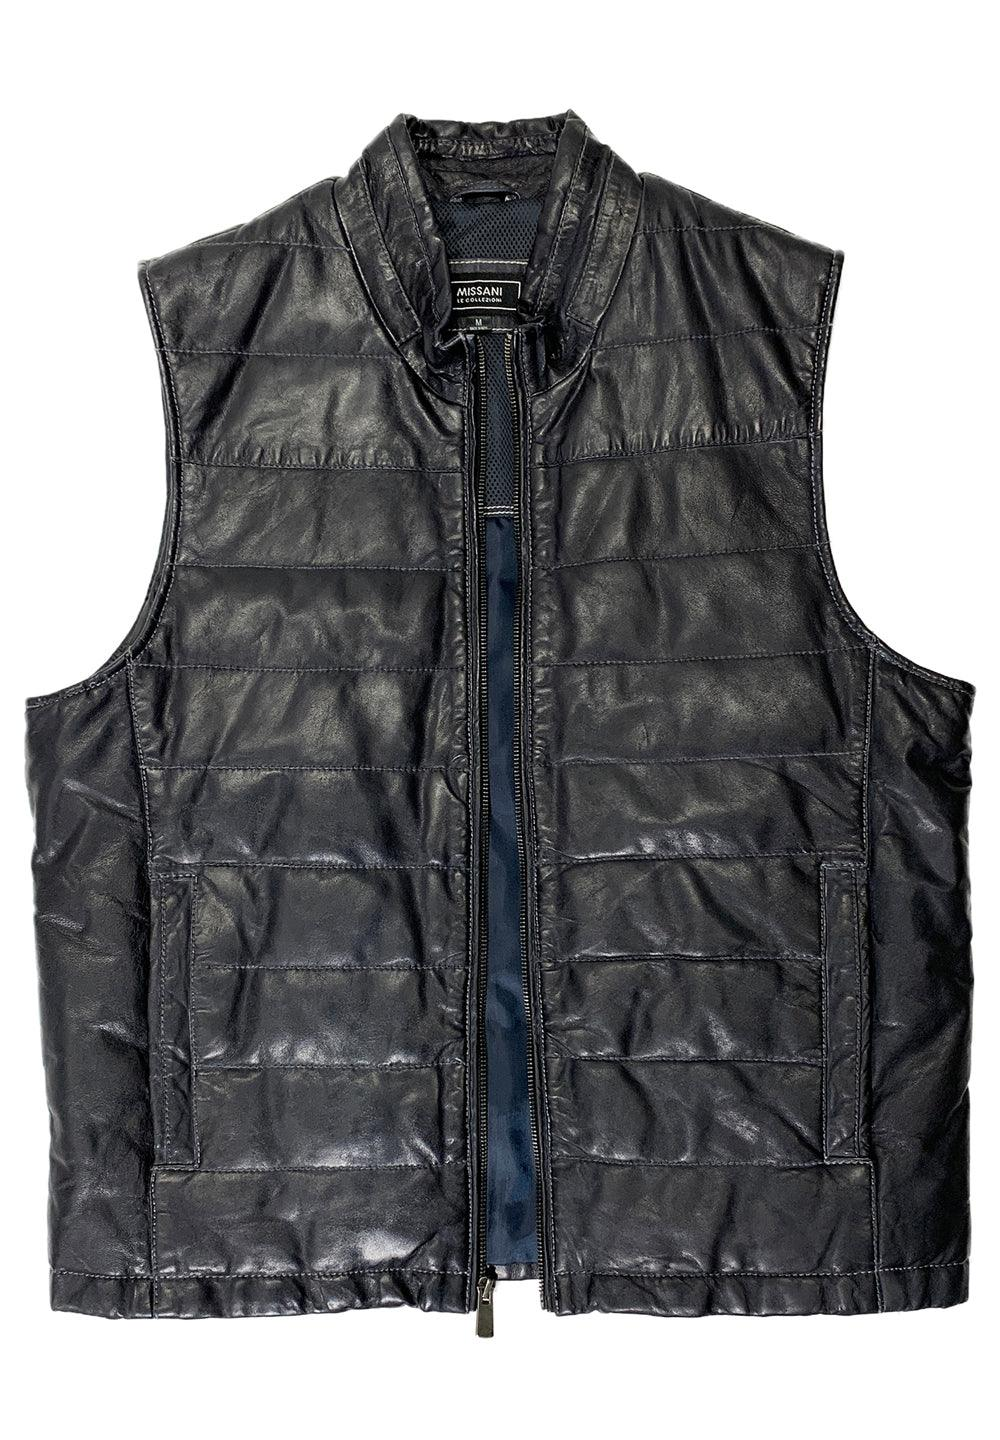 The perfect style for those cool days or nights that require a little extra warmth. The soft, medium weight leather is stitched to add style and an updated cool look. Imported, modern fit and a medium weight.  Cali Style Leather Vest  Medium weight premium leather. Slightly distressed look to the leather. Full zip and mock neck style. Horizontal stitch for style. Style and warmth. Modern Fit.